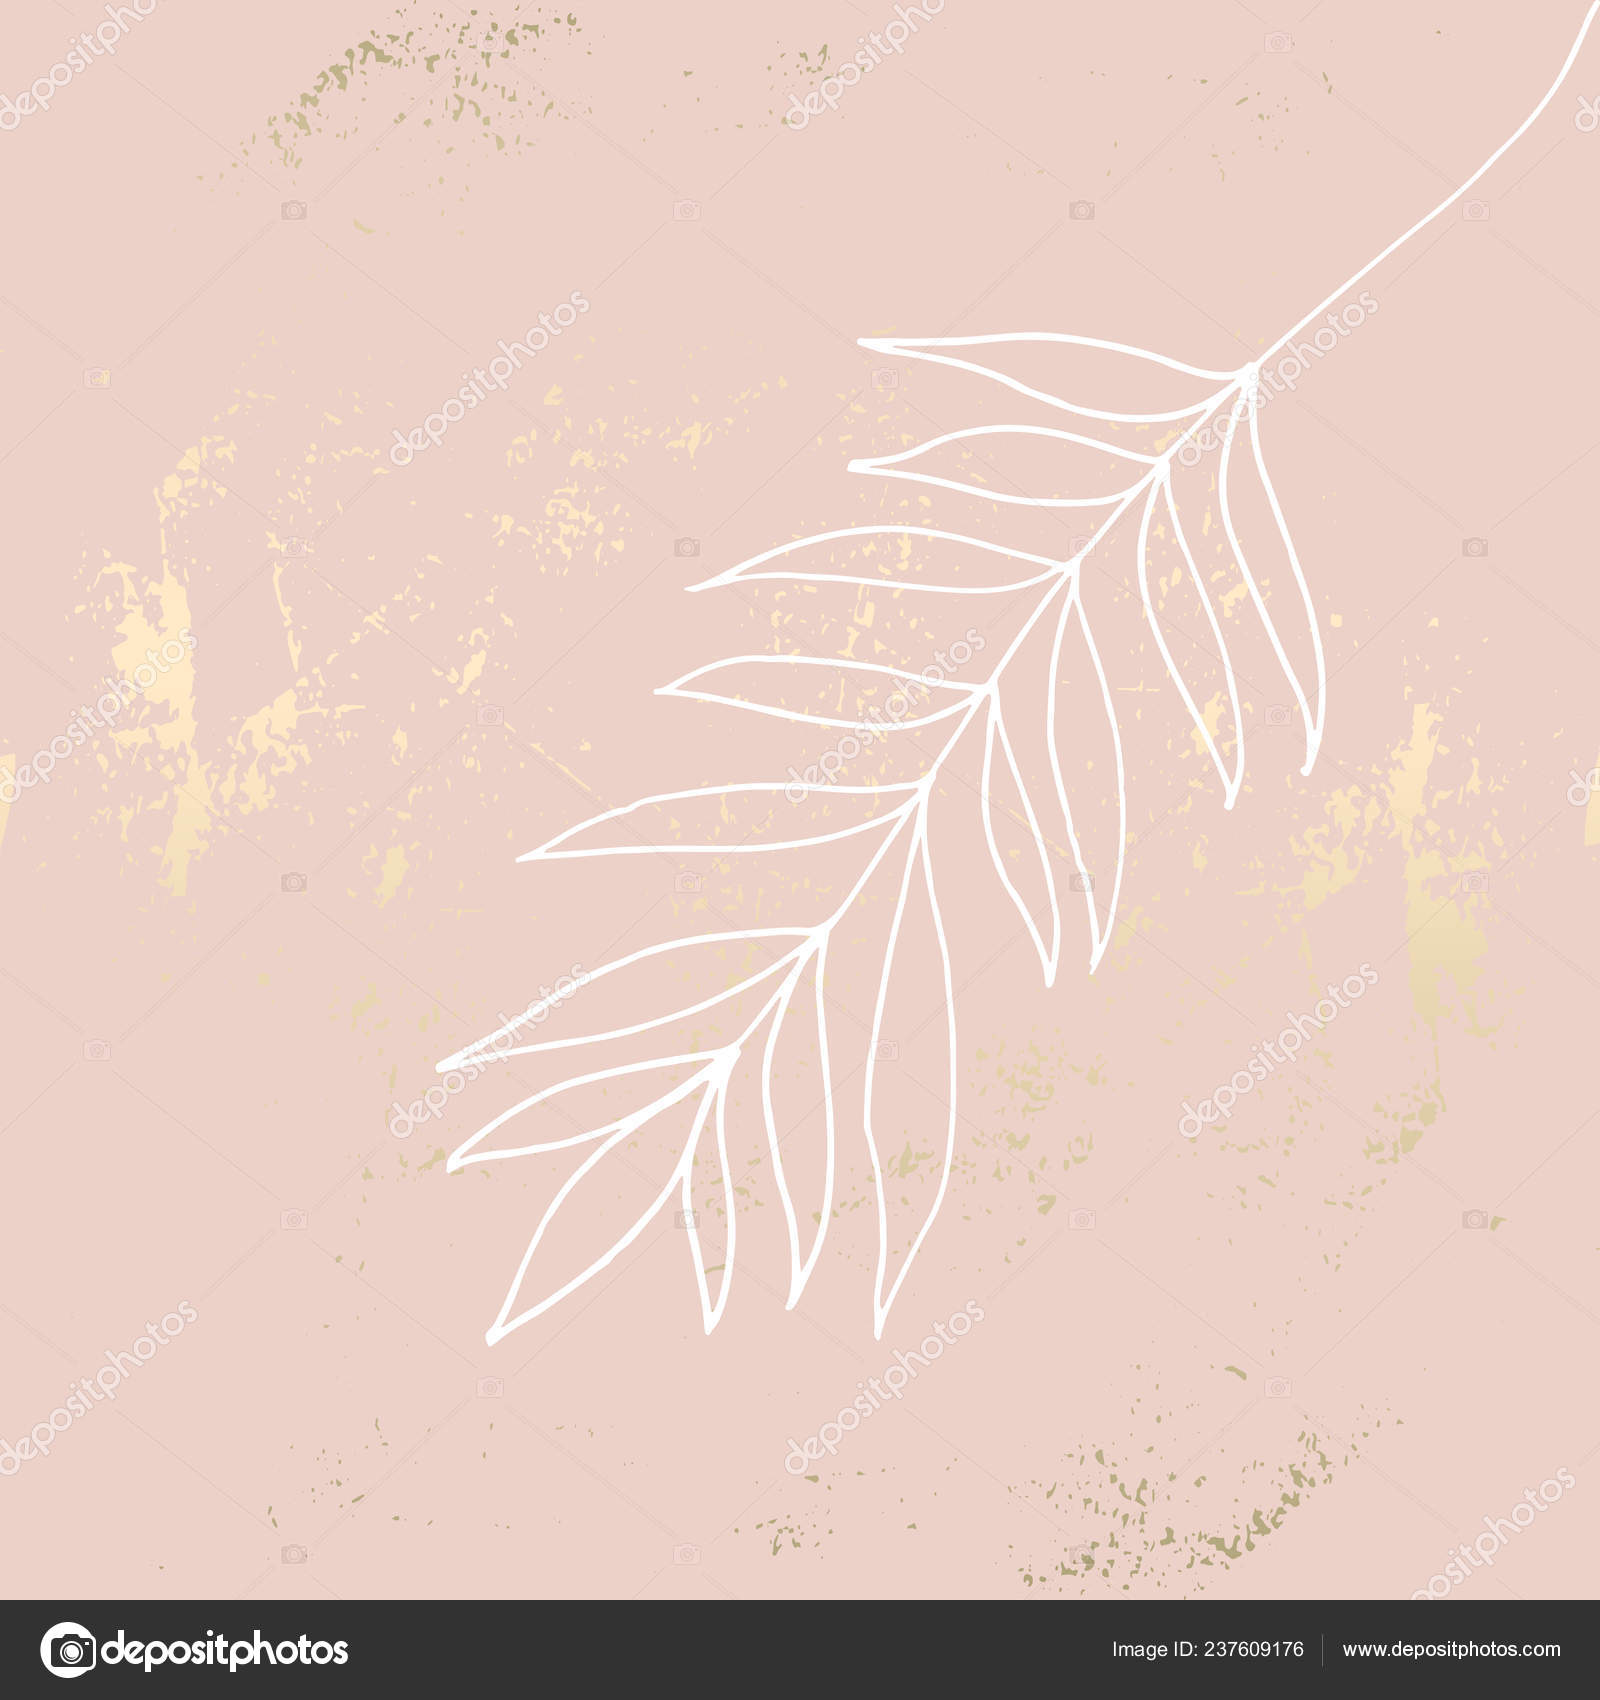 Background Marble Rose Gold Wallpaper Tropical Worn Floral Pastel Rose Gold Marble Pattern Wallpaper Textile Stock Vector C Anna Sokol 237609176